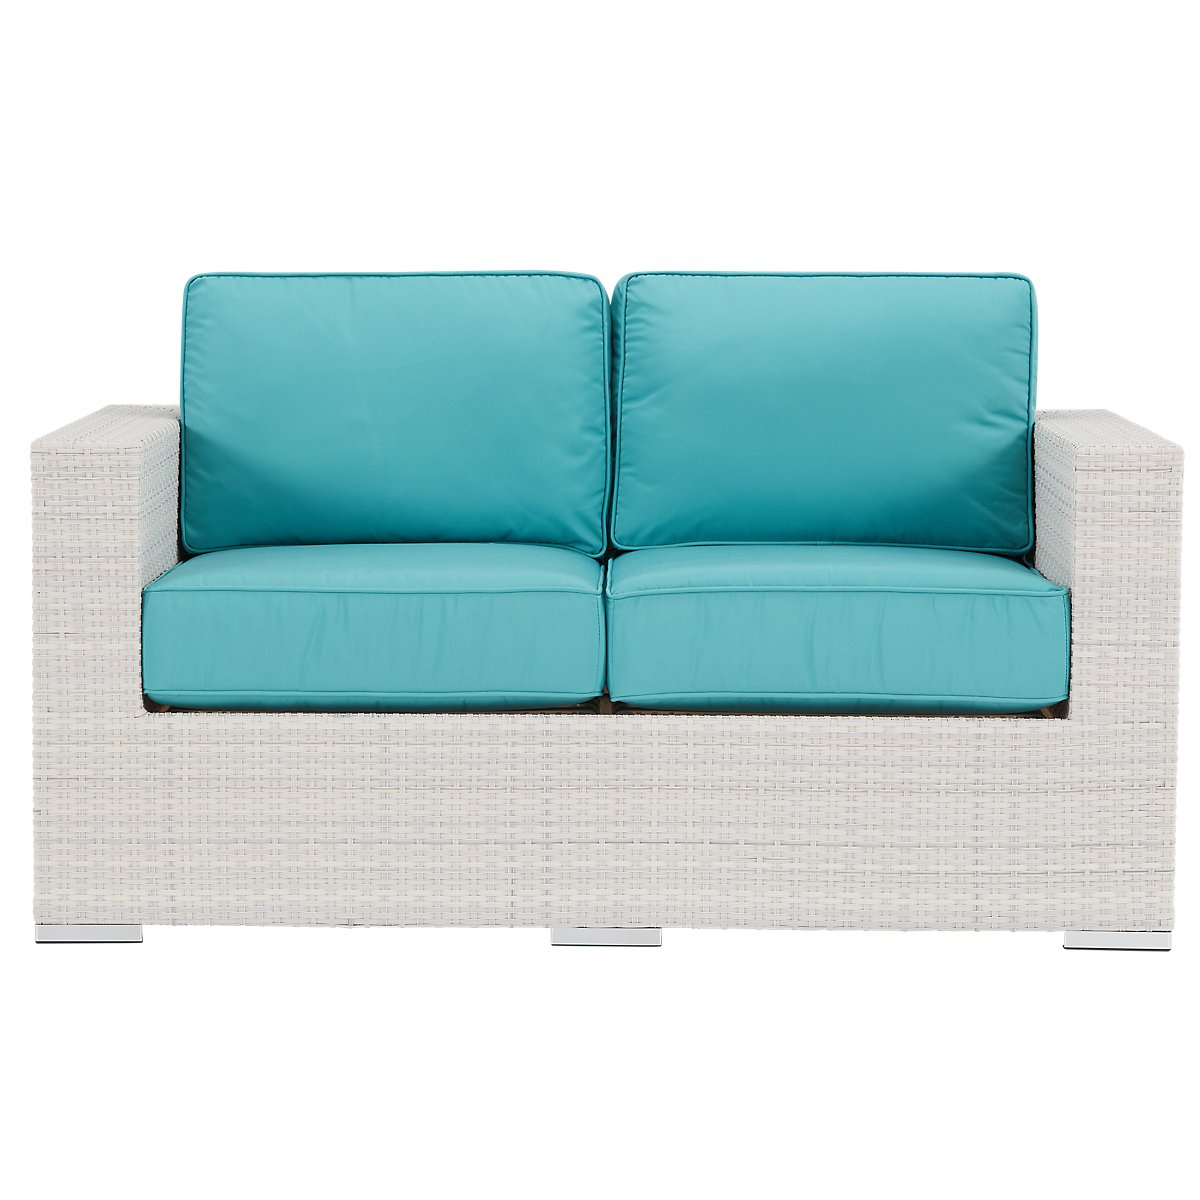 City Furniture Biscayne Dark Teal Loveseat